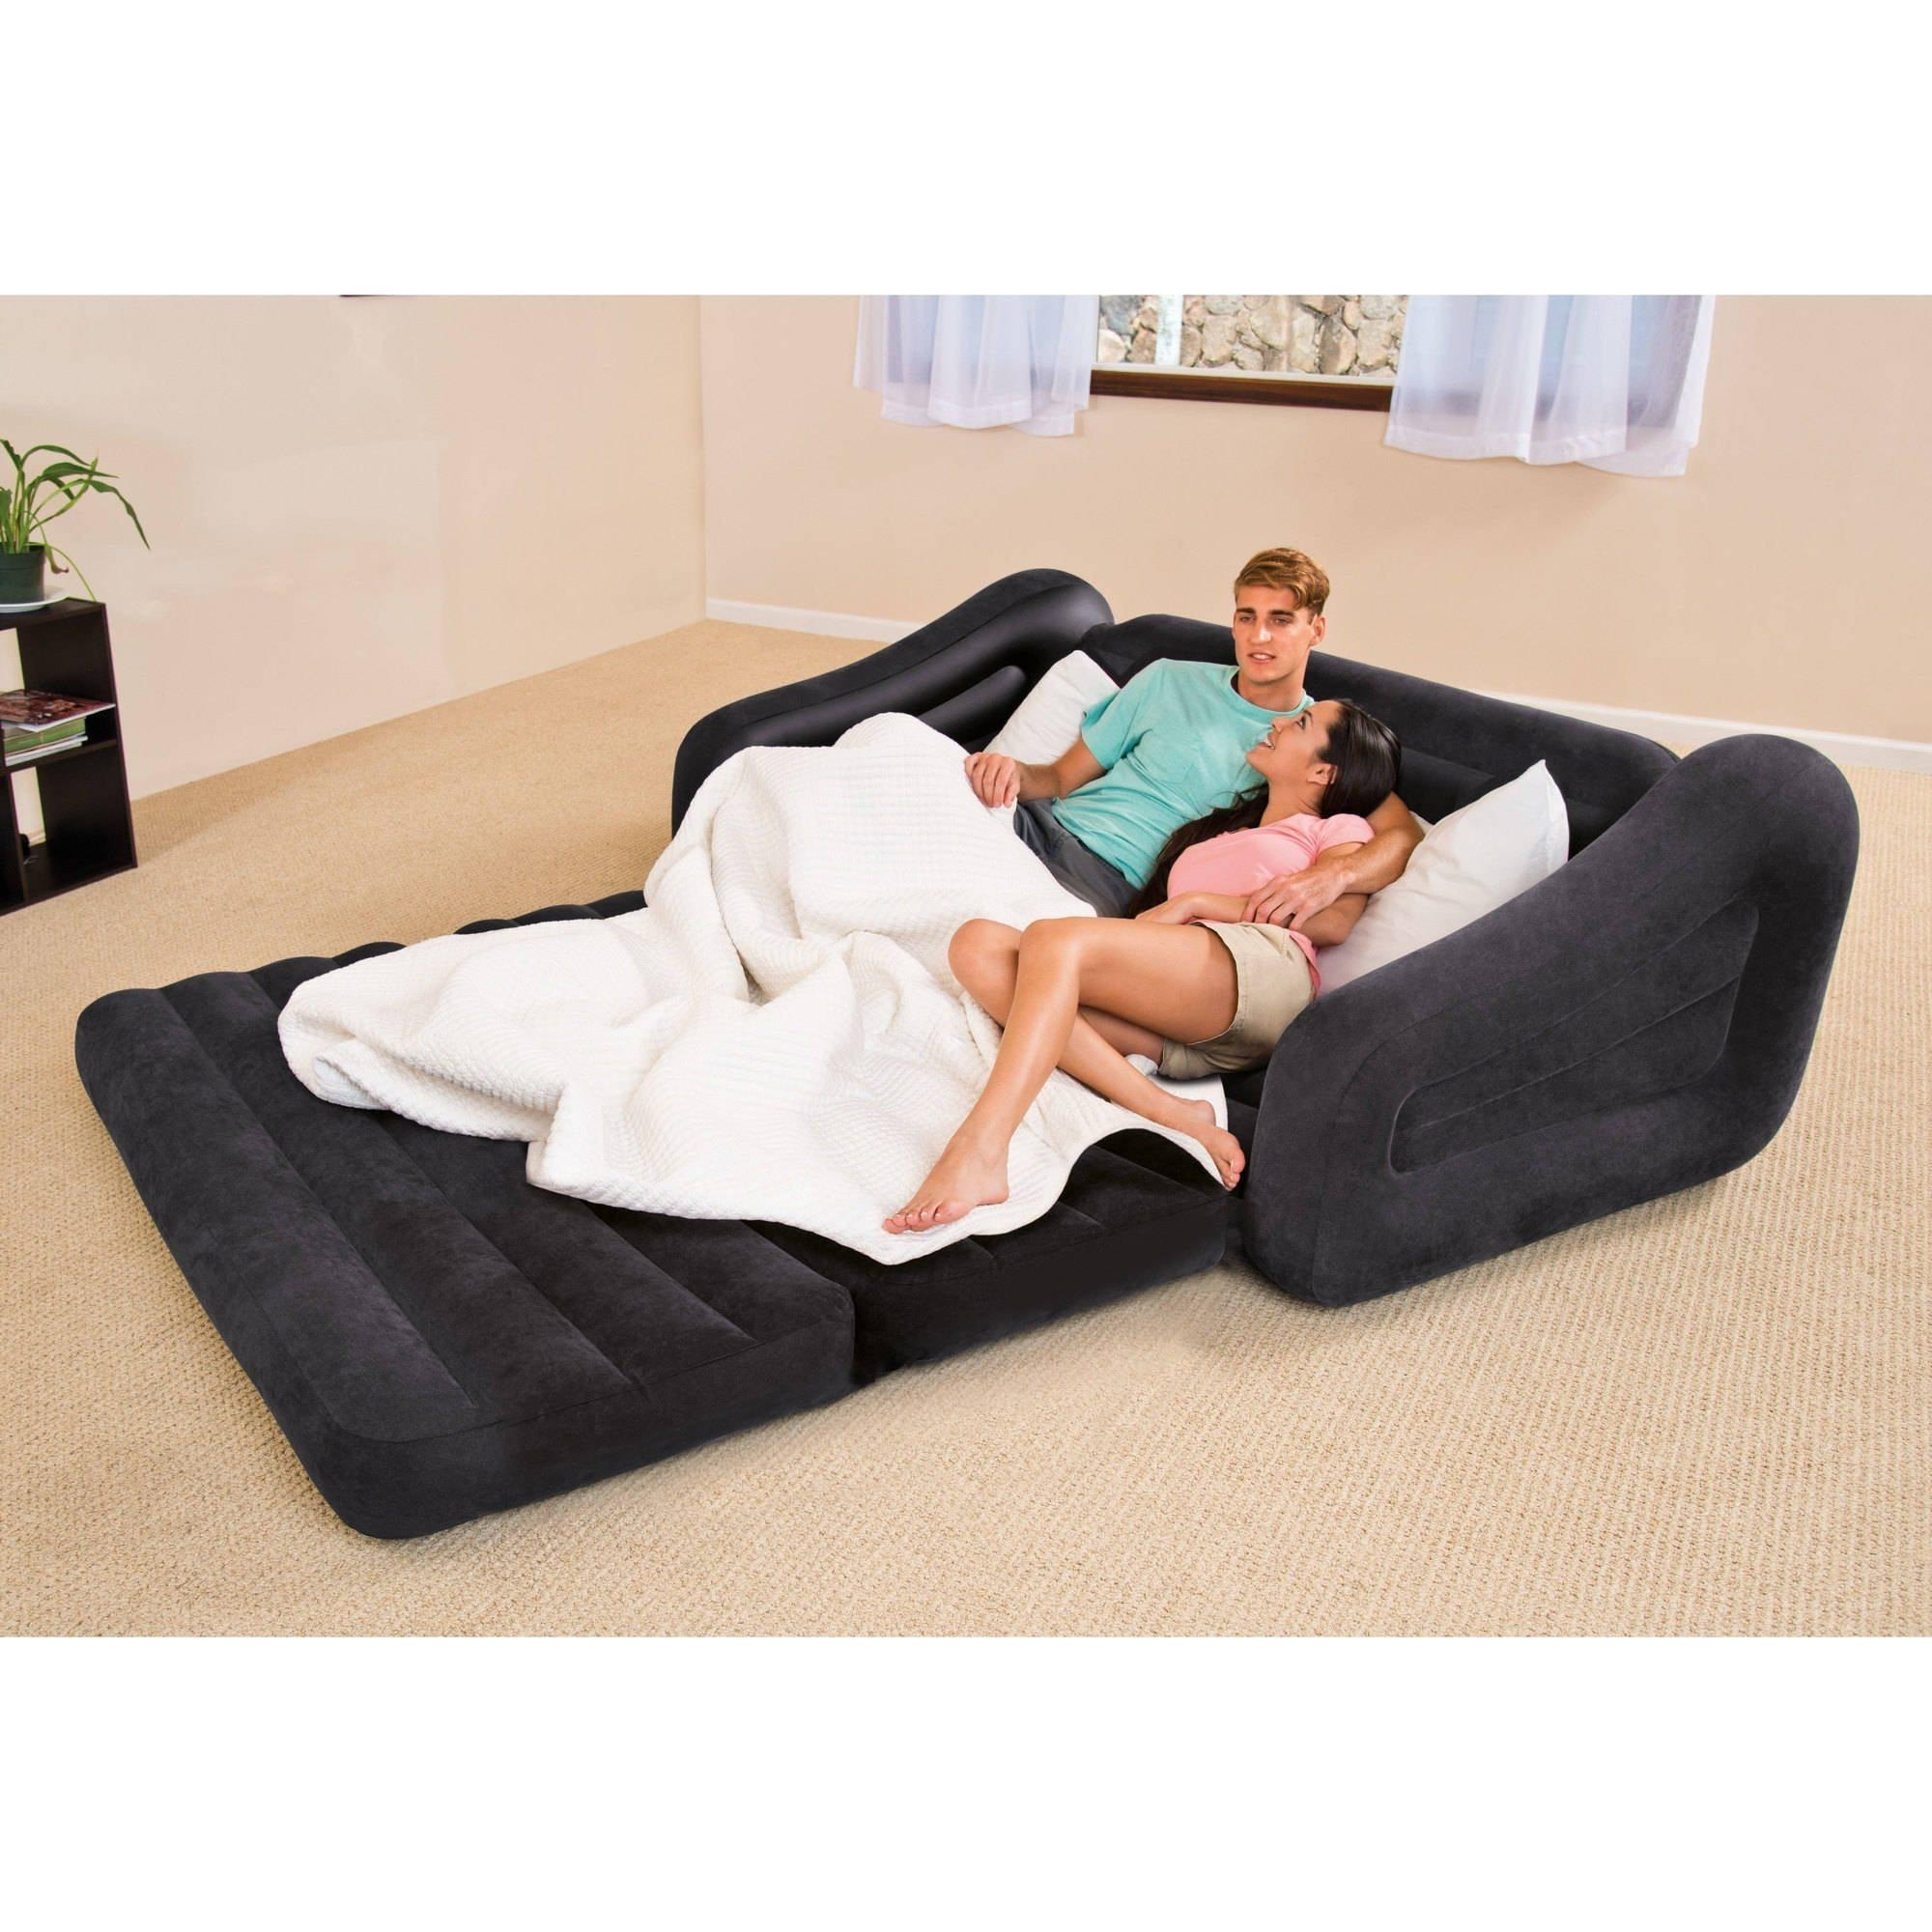 Intex Inflatable Pull Out Sofa Queen Mattress Sleeper With Concept In Intex Sleep Sofas (Image 6 of 20)